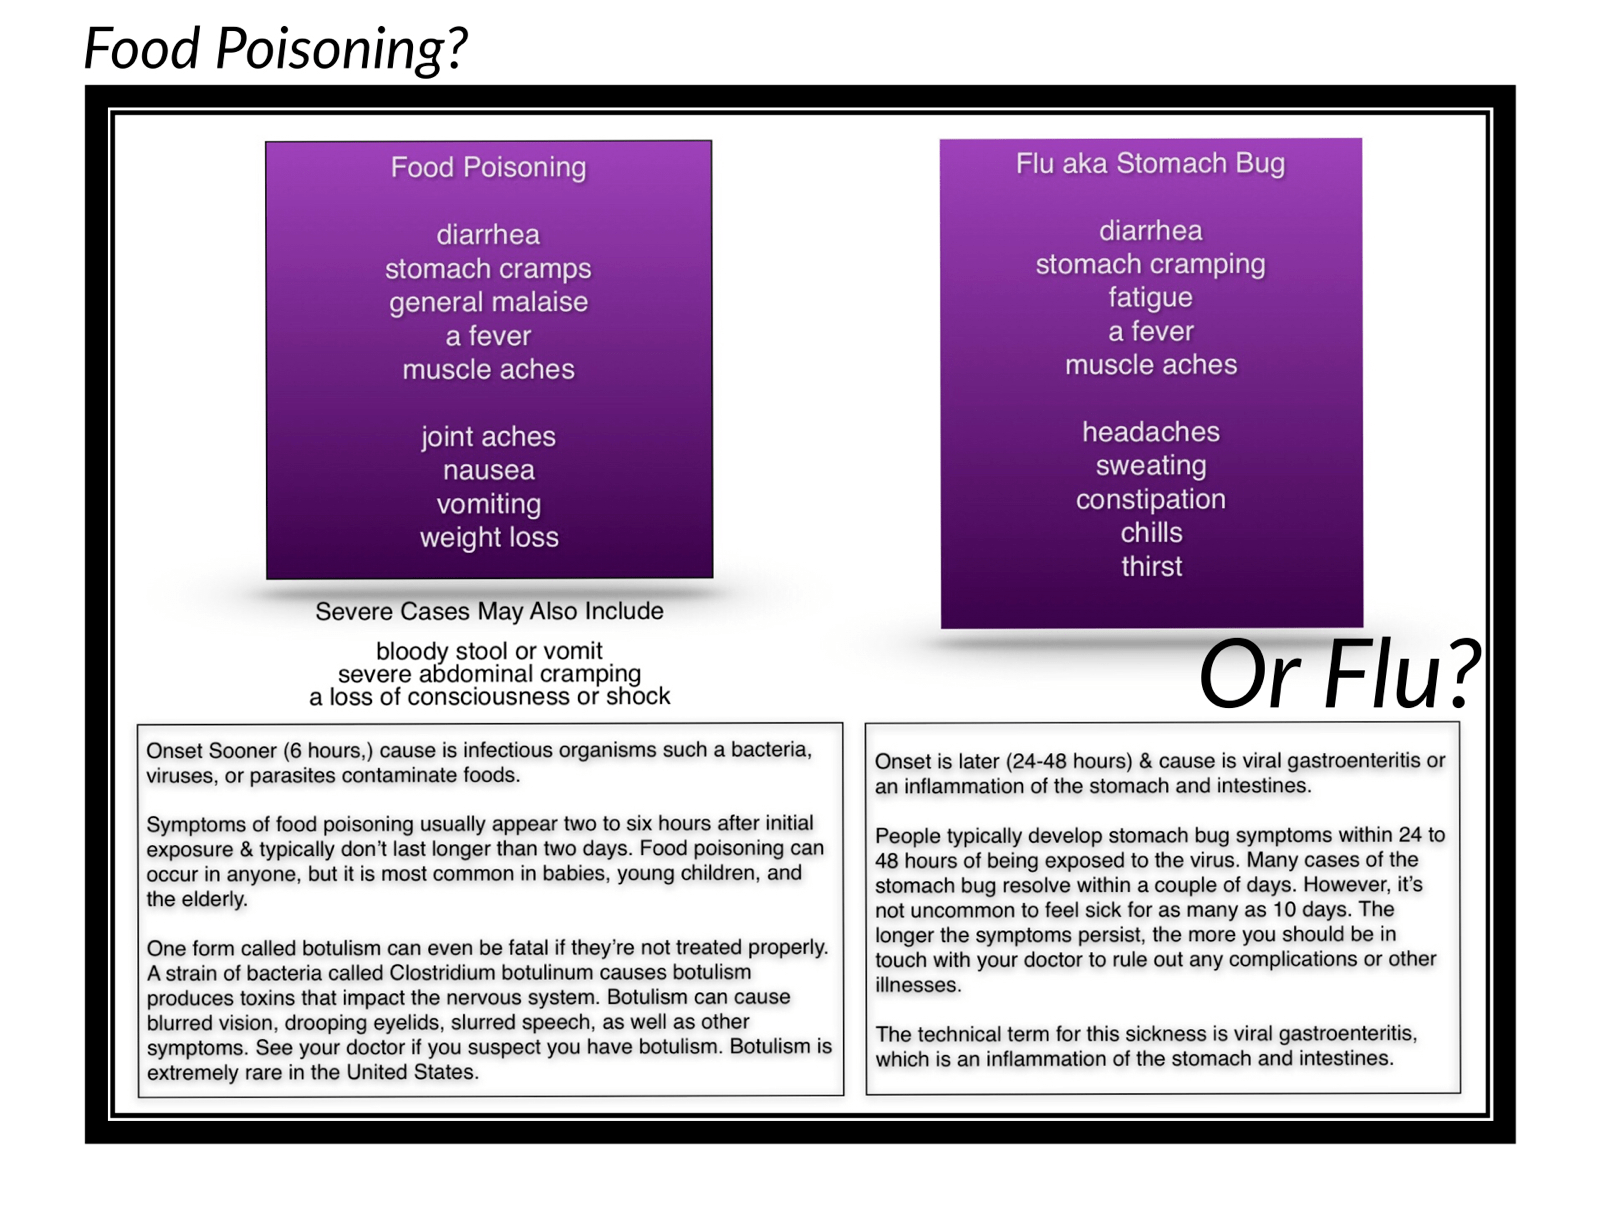 flu or food poisoning chart - Buna.digitalfuturesconsortium.org